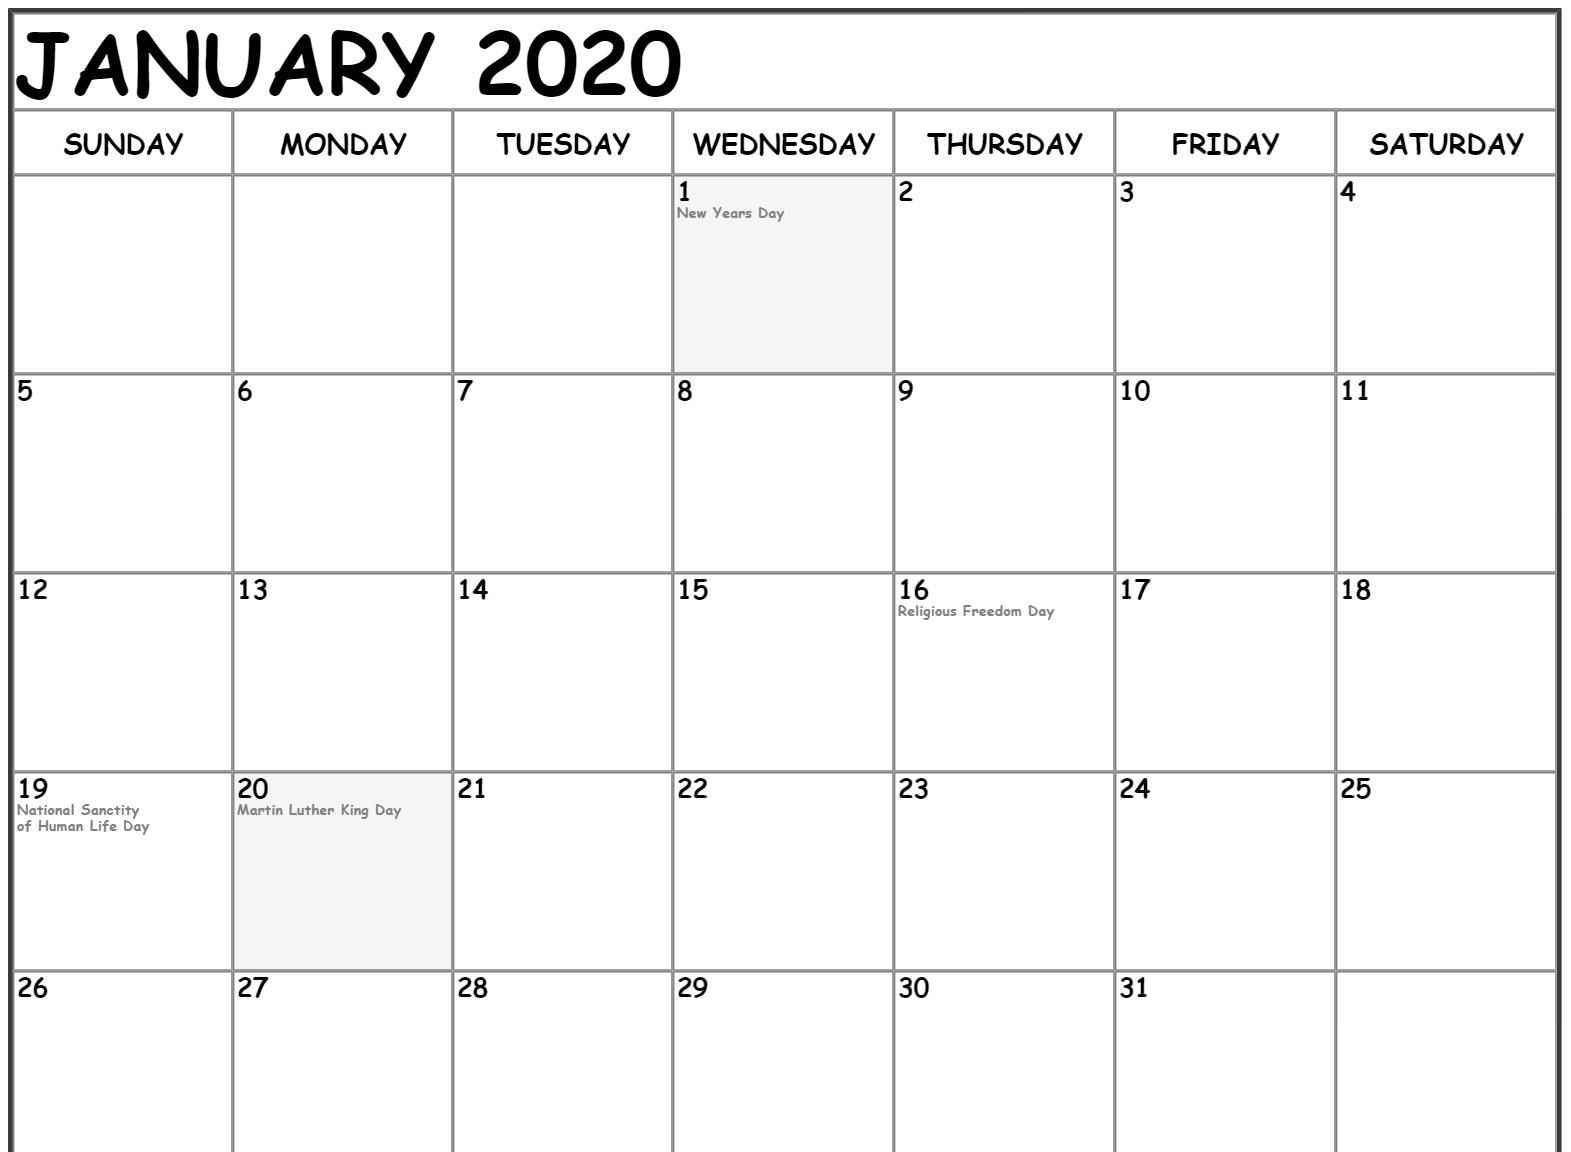 Free Fillable January Calendar 2020 Printable Editable With  Free Monthly Calendar Print Out 2020 With Holidays